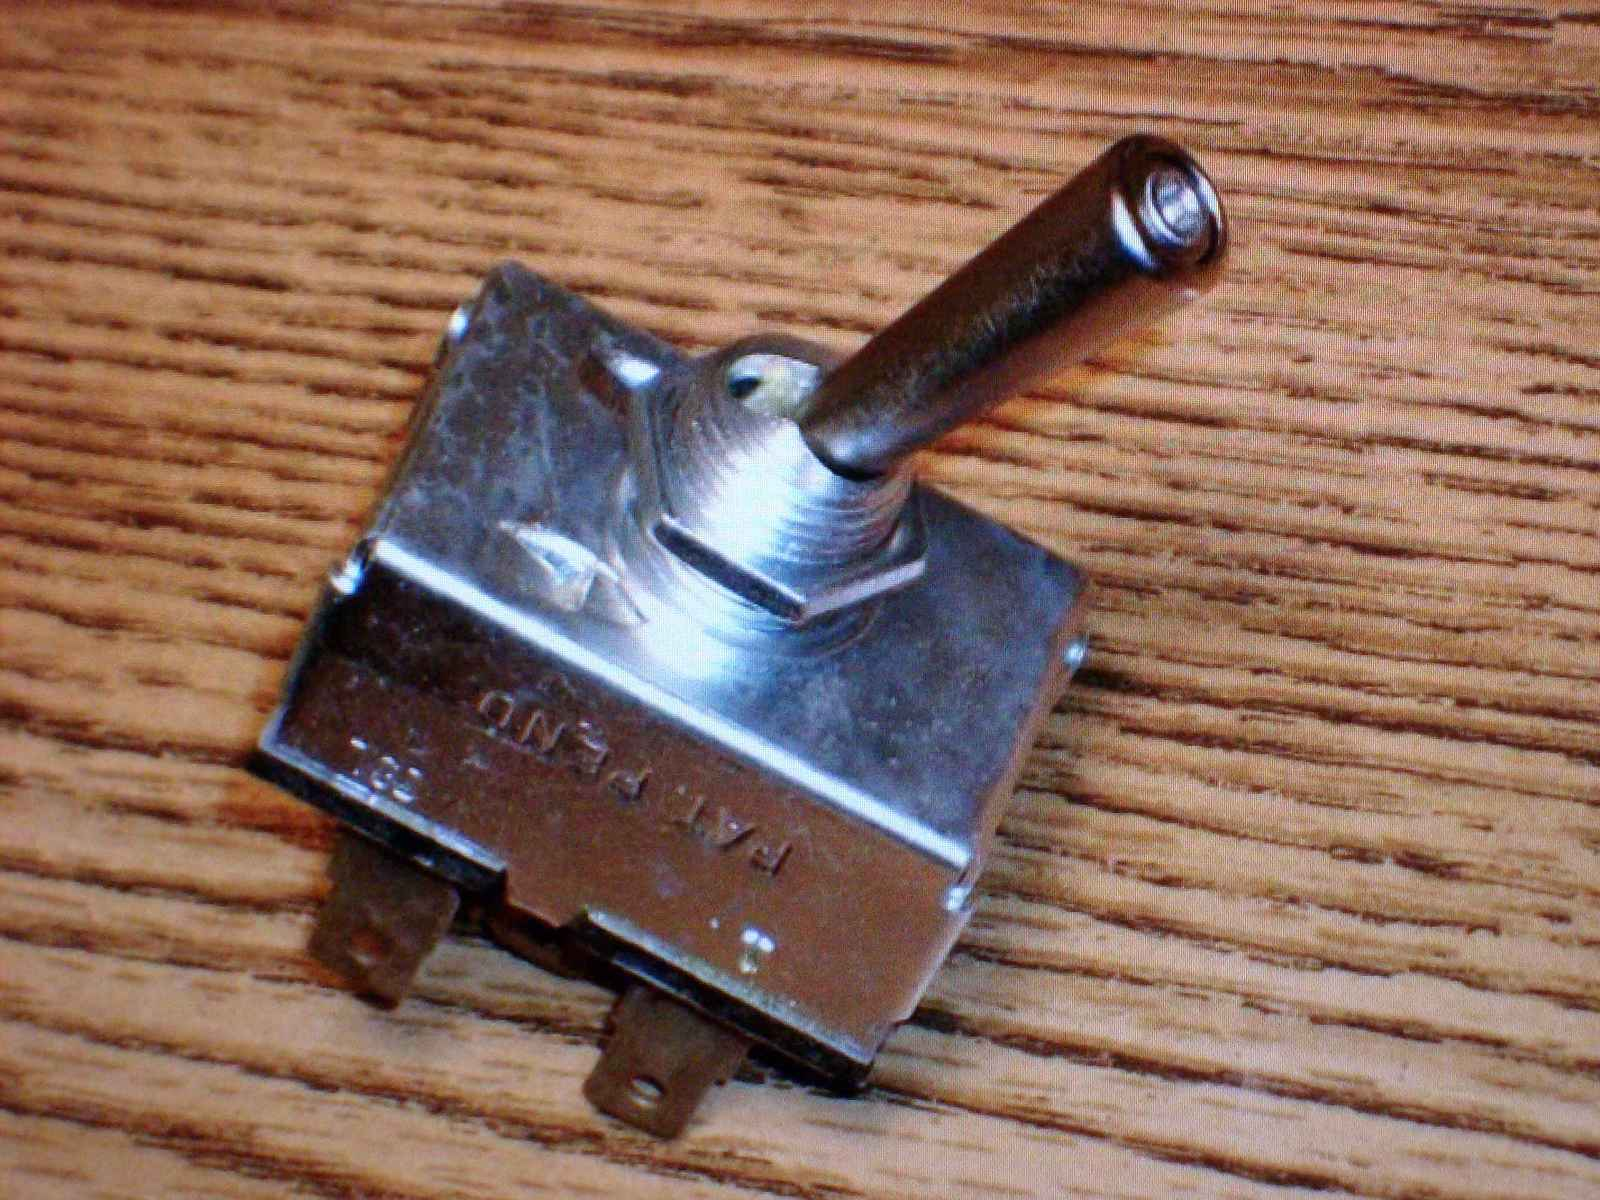 Cub Cadet PTO switch 725-3022, 925-3022, and 50 similar items